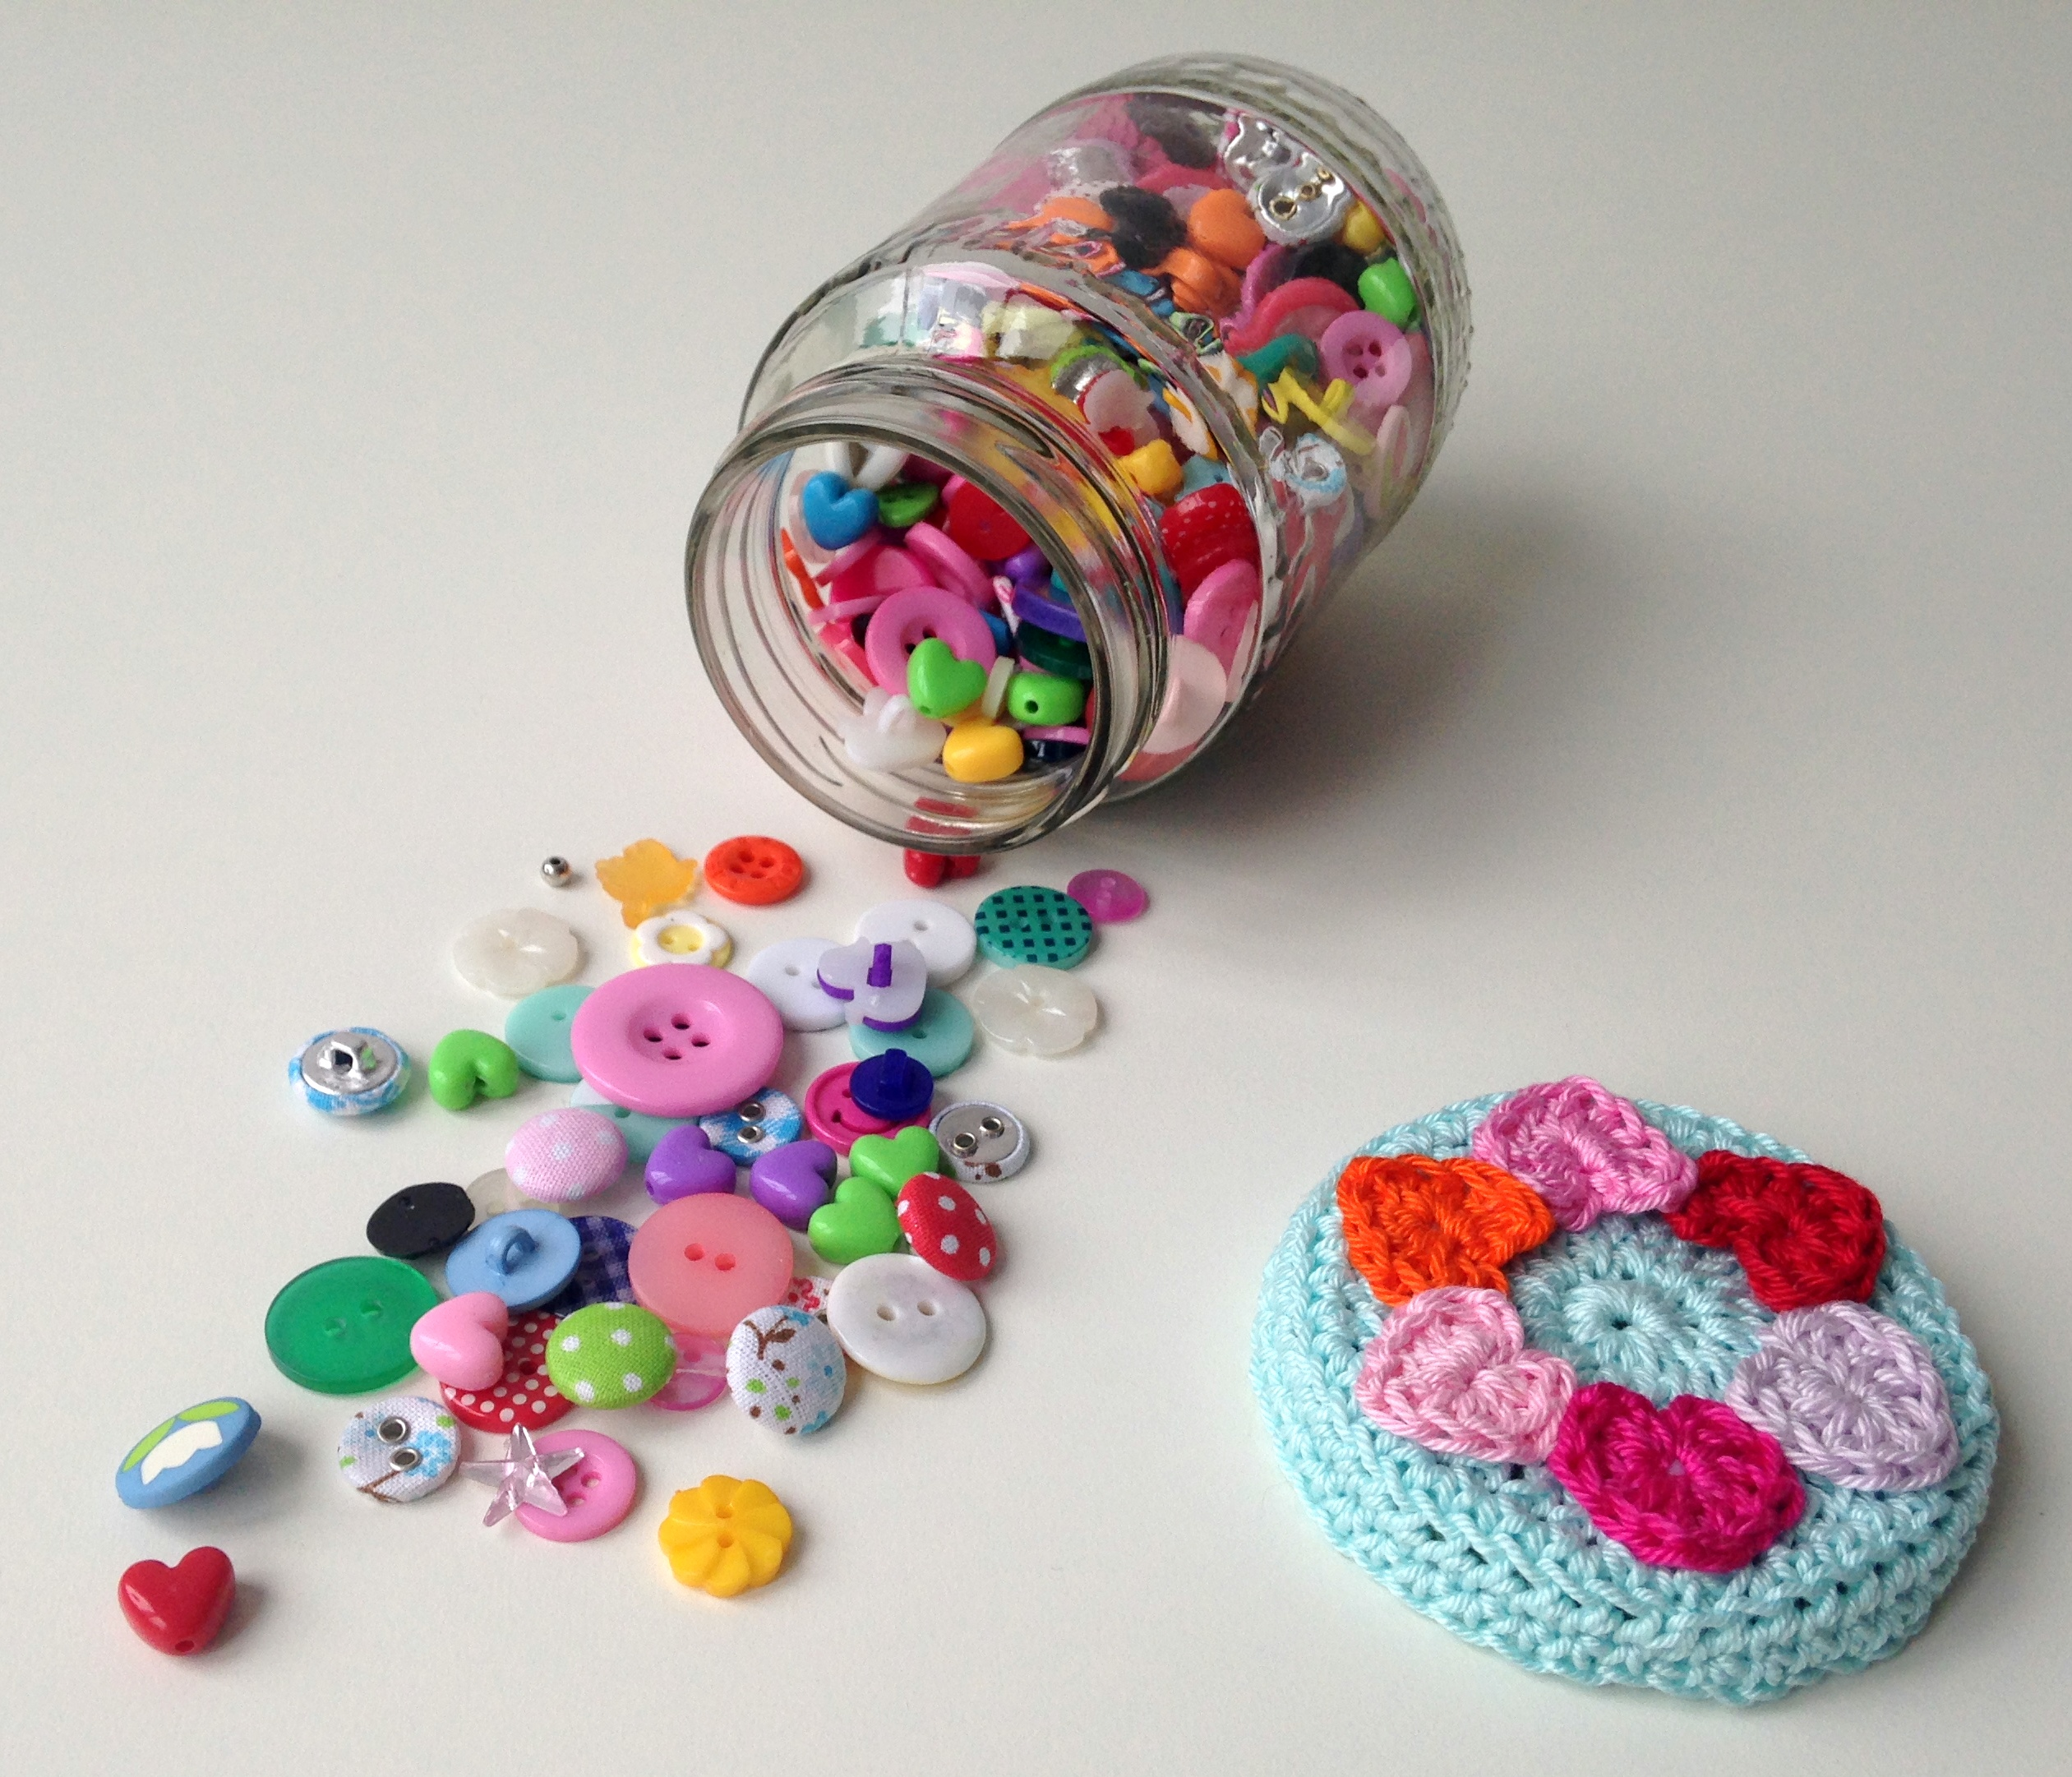 Crochet Patterns Jar Lids : Crocheted Jar Lid Covers maRRose - Colorful Crochet & Crafts